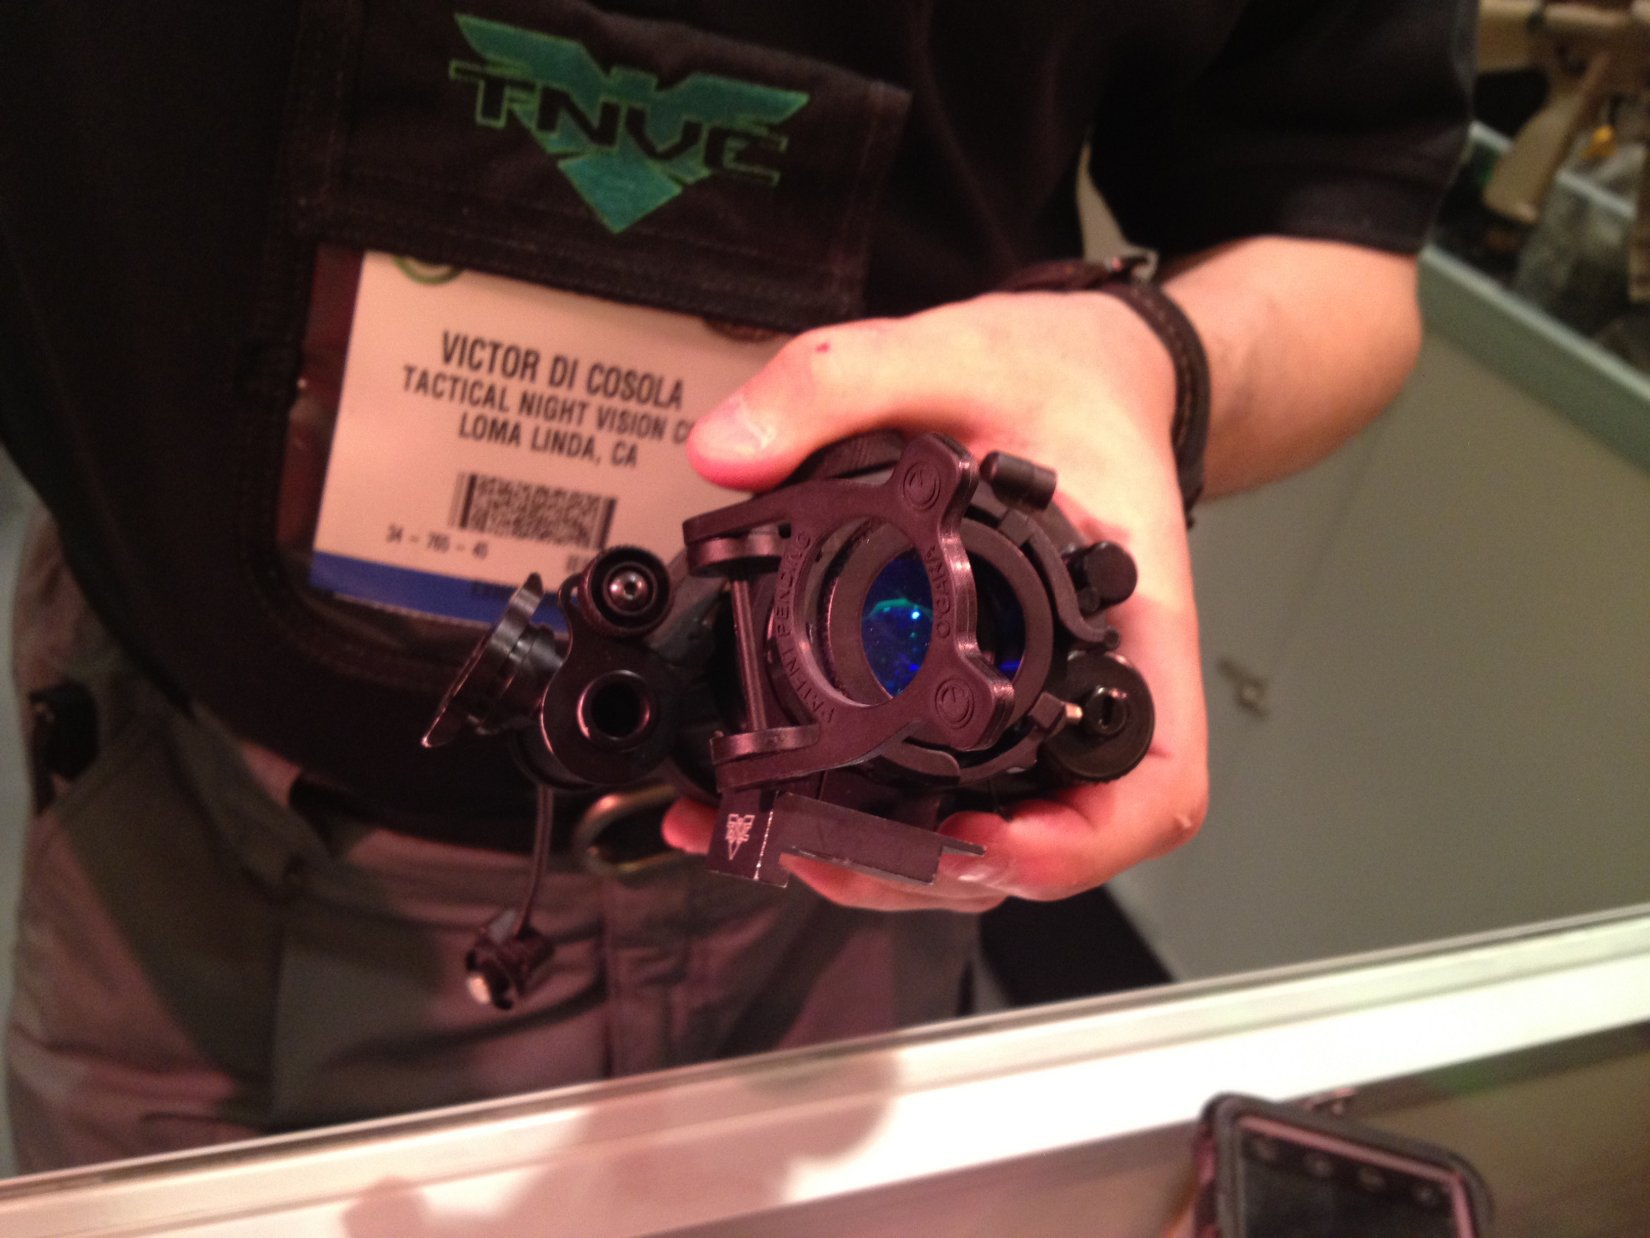 Tactical Night Vision Company Re Focus Ring TNVC RFR on PVS 14 Monocular SHOT Show 2012 David Crane DefenseReview.com DR 1 Tactical Night Vision Company (TNVC) Universal Re Focus Ring (RFR) Flip Down/Flip Up Lens for Night Observation Devices (NODS): Instantly Refocus Your Monocular or Goggle During Tactical Night Ops